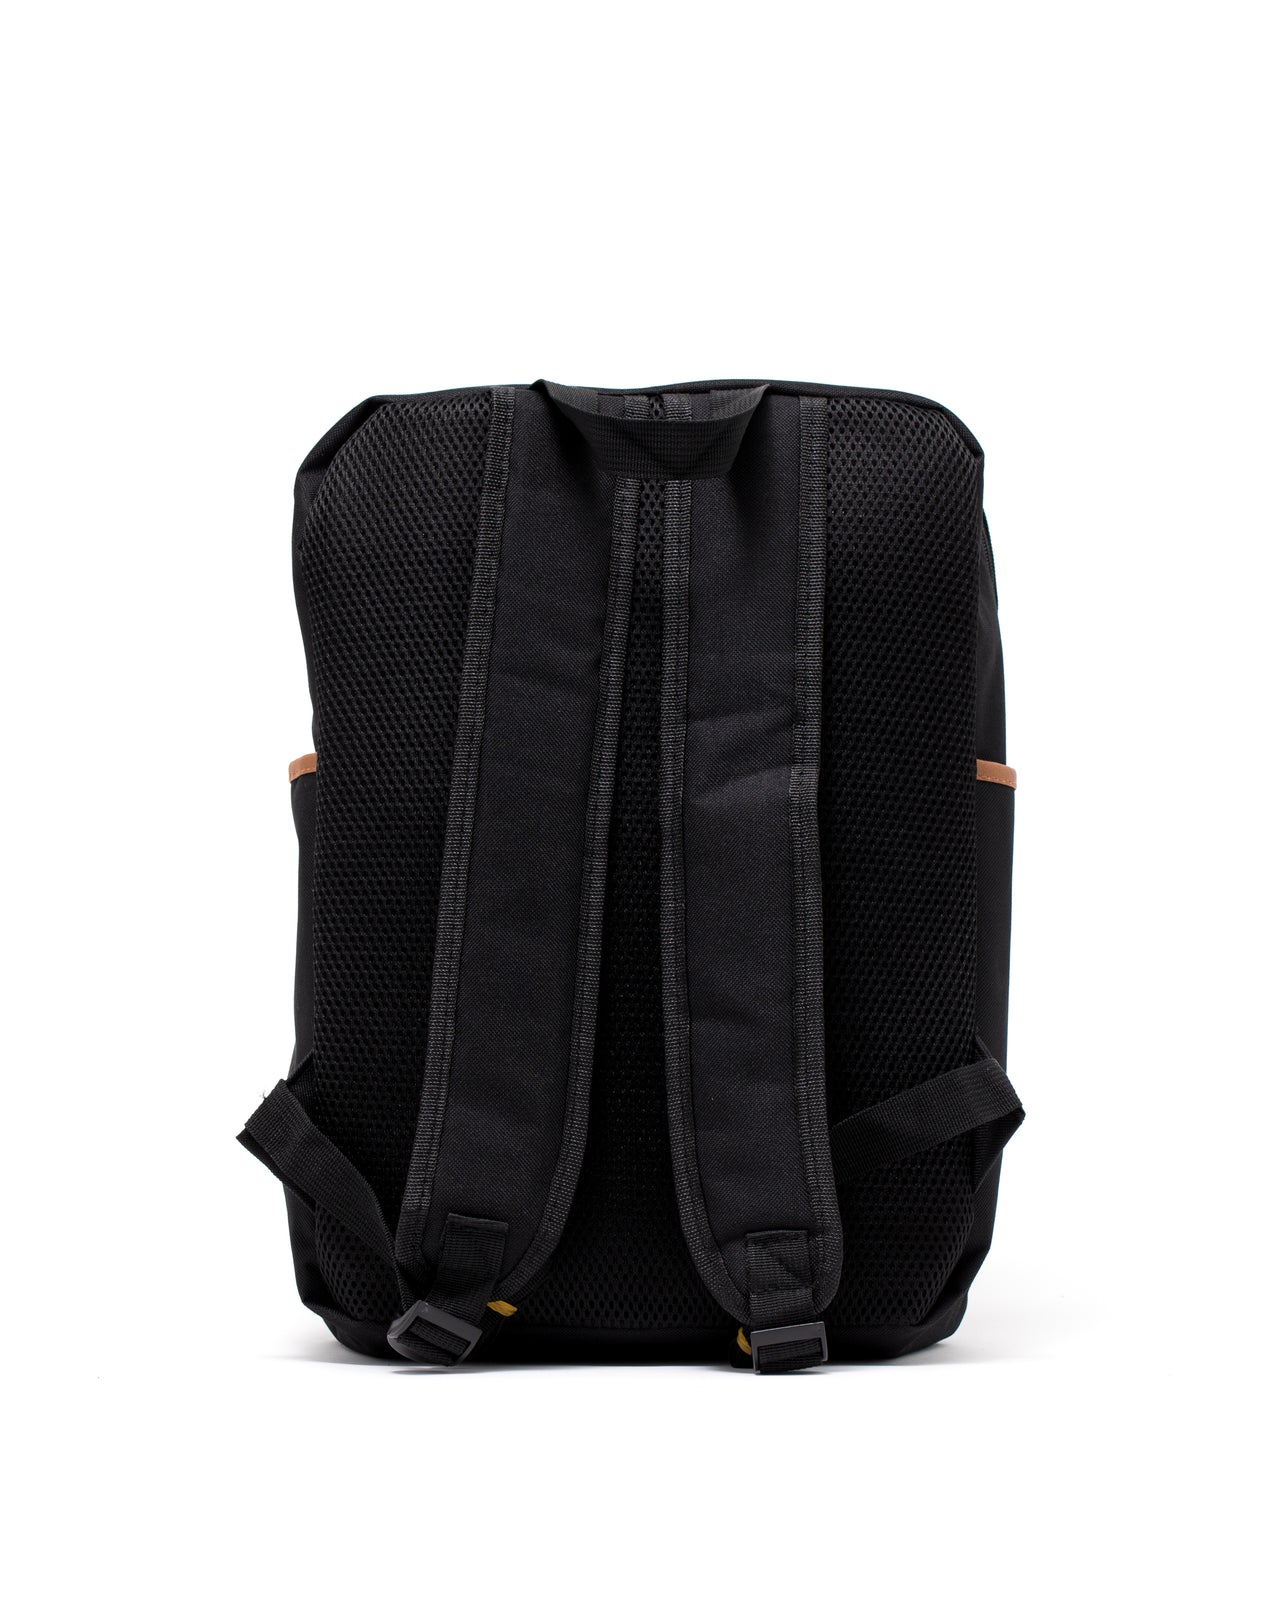 PS 101 Backpack - Color: Black | Black